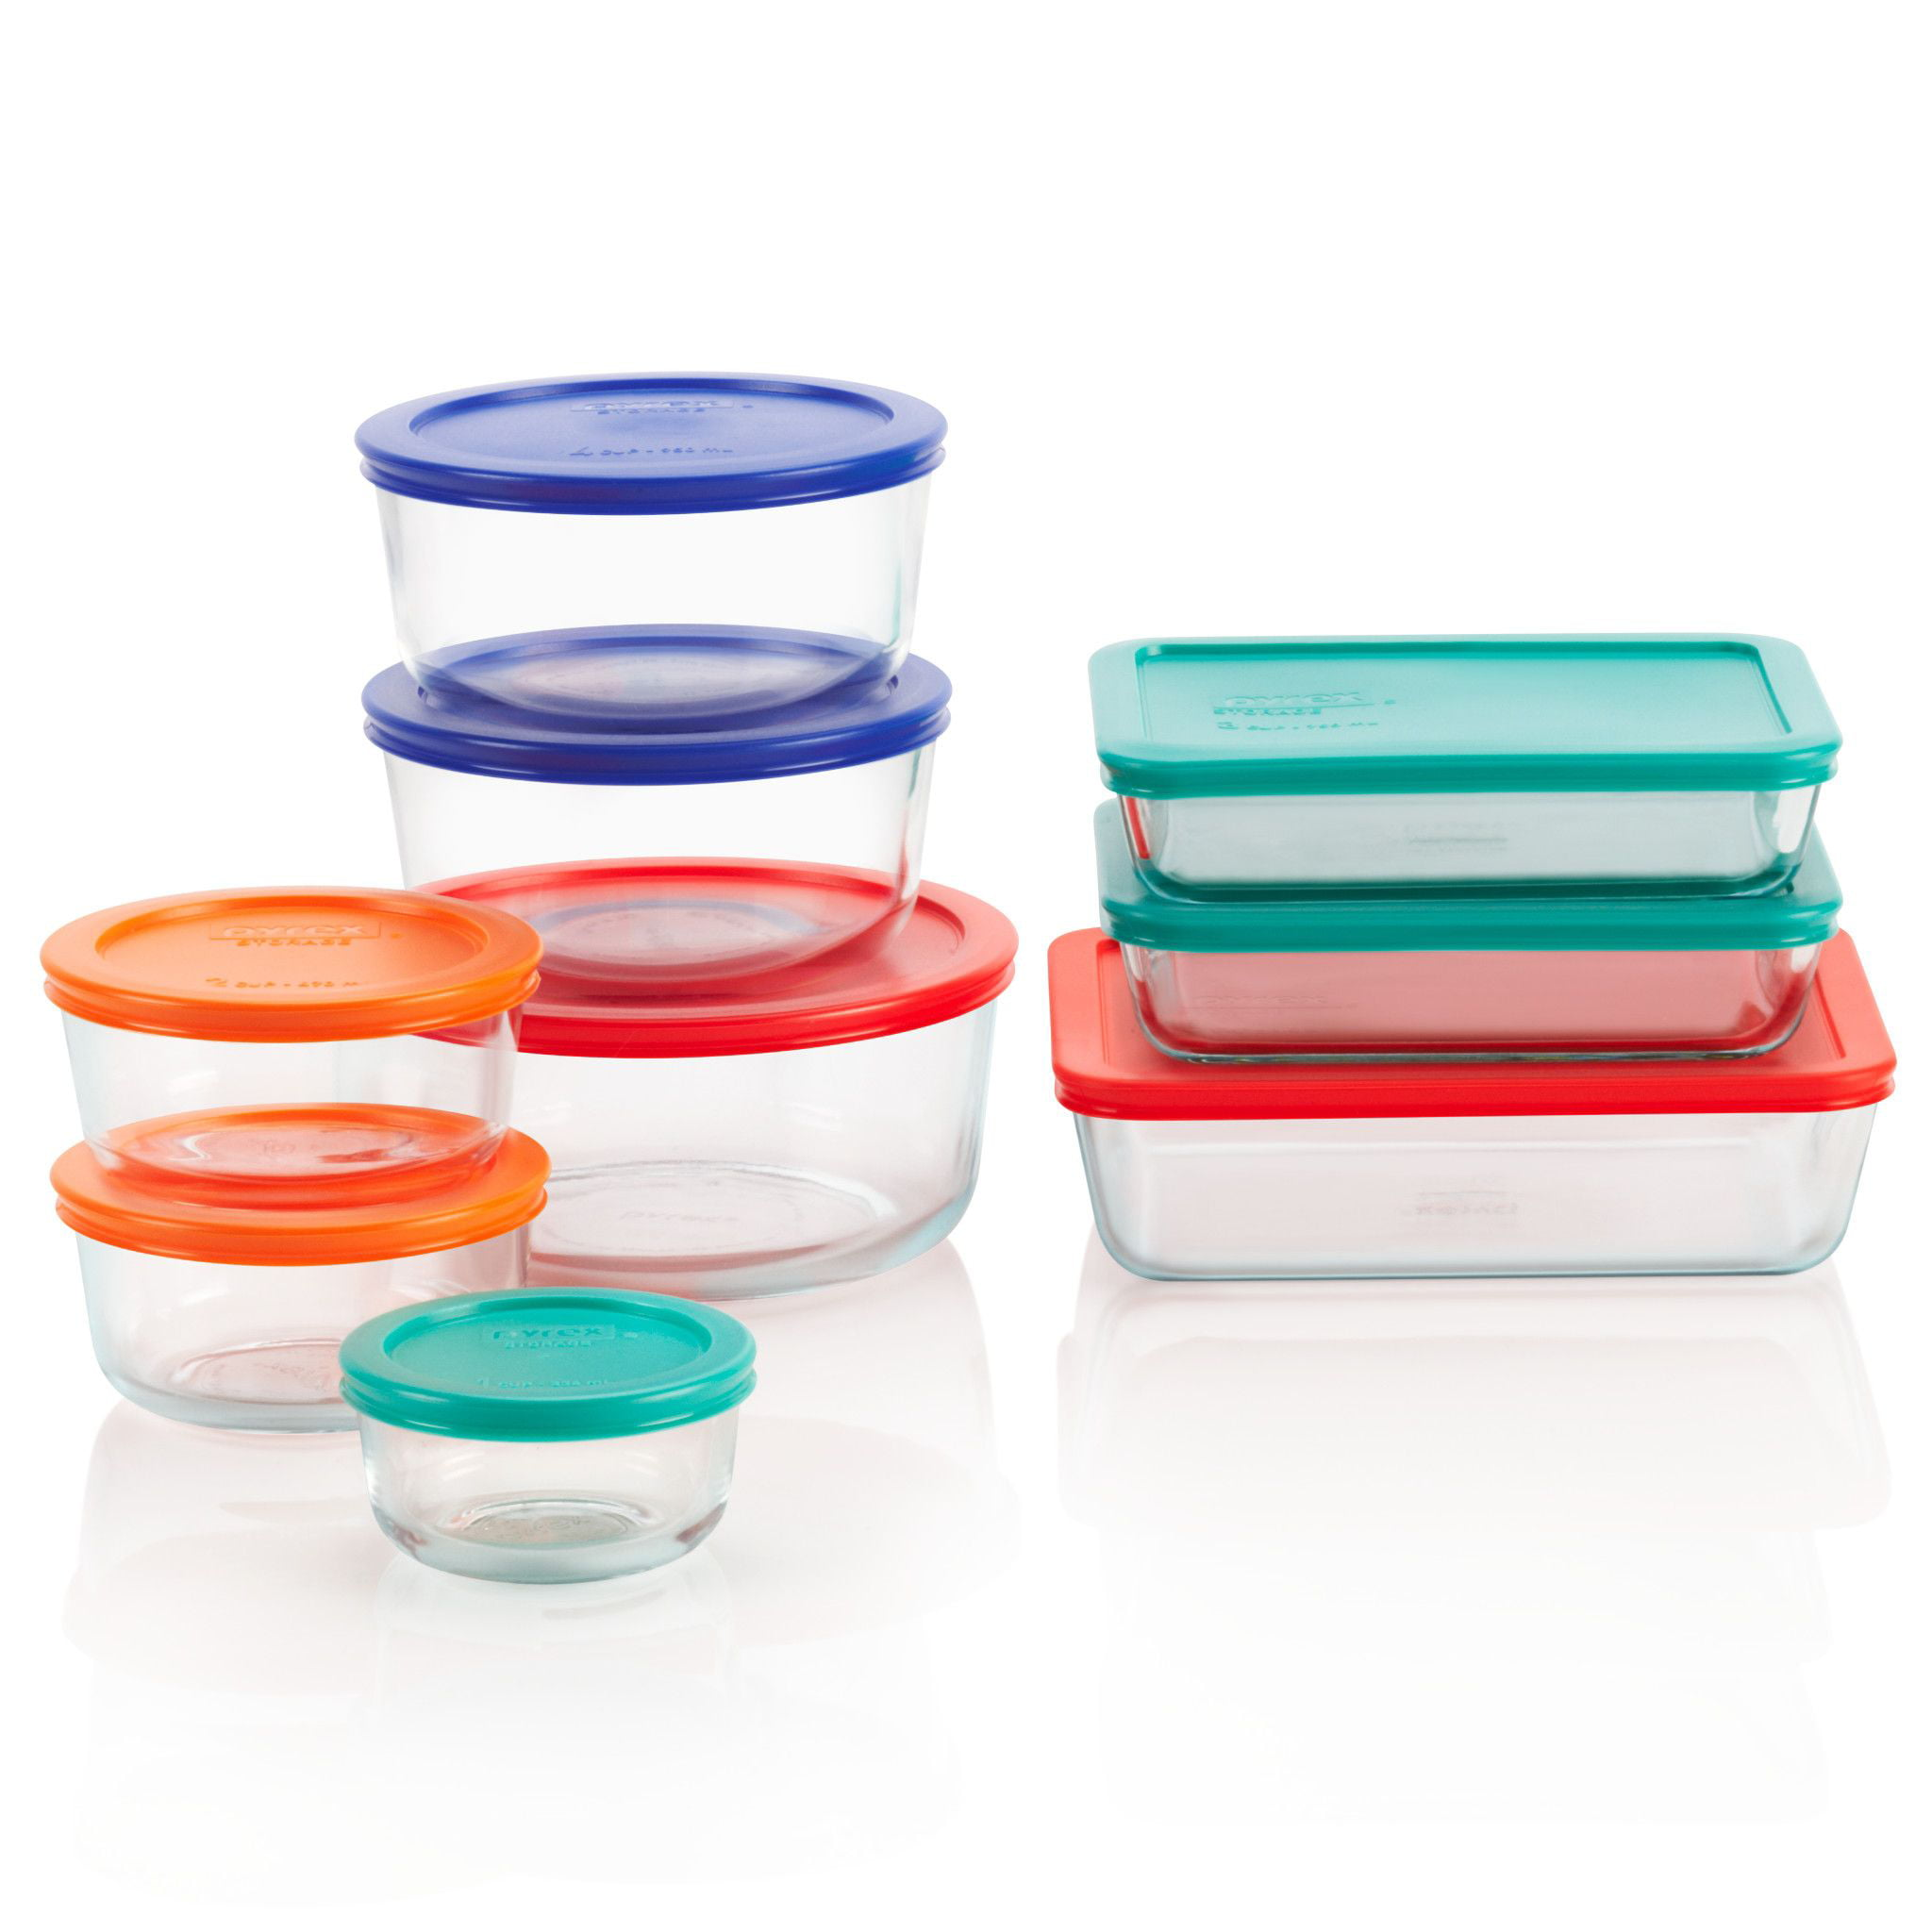 Salad Dressing 1oz Container Cup Set with Snap Airtight Lids 6pc Reusable Dip